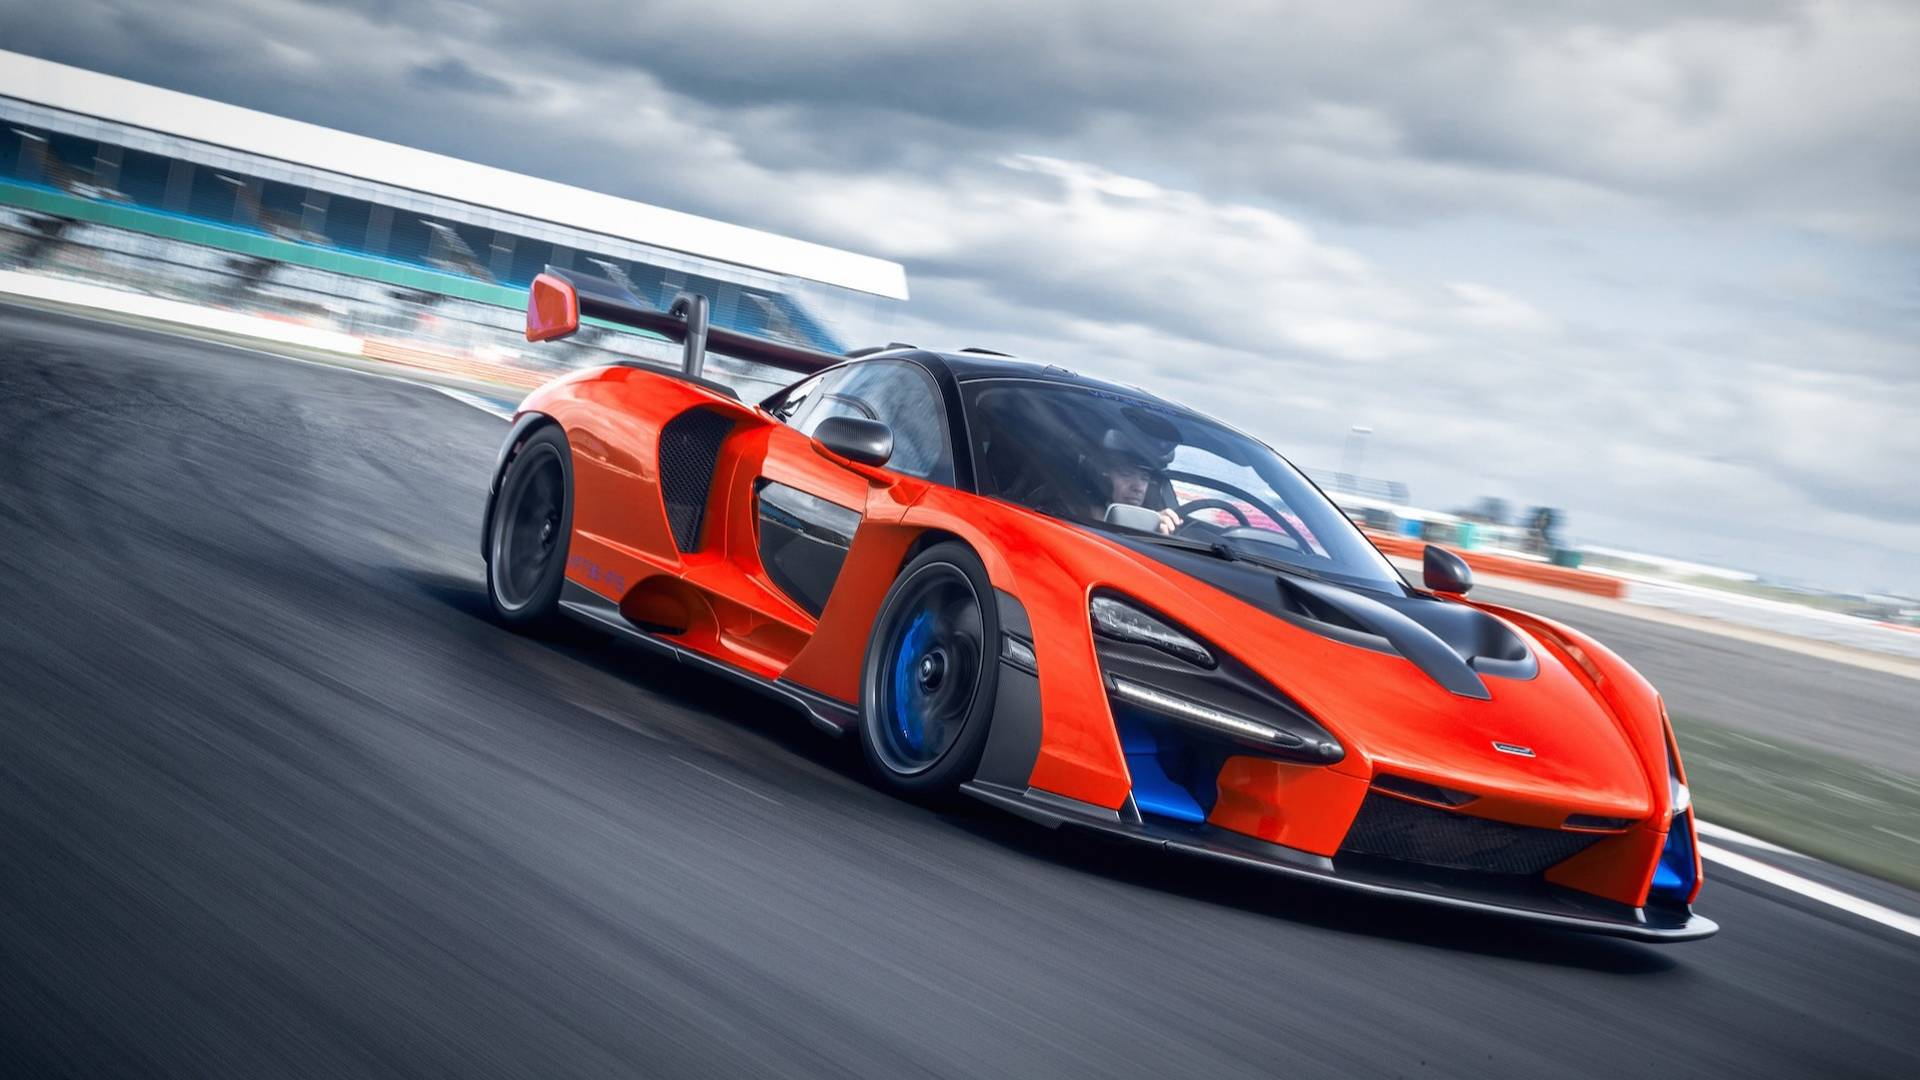 2019 McLaren Senna Color Delta Red Front Three Quarter Wallpaper 23